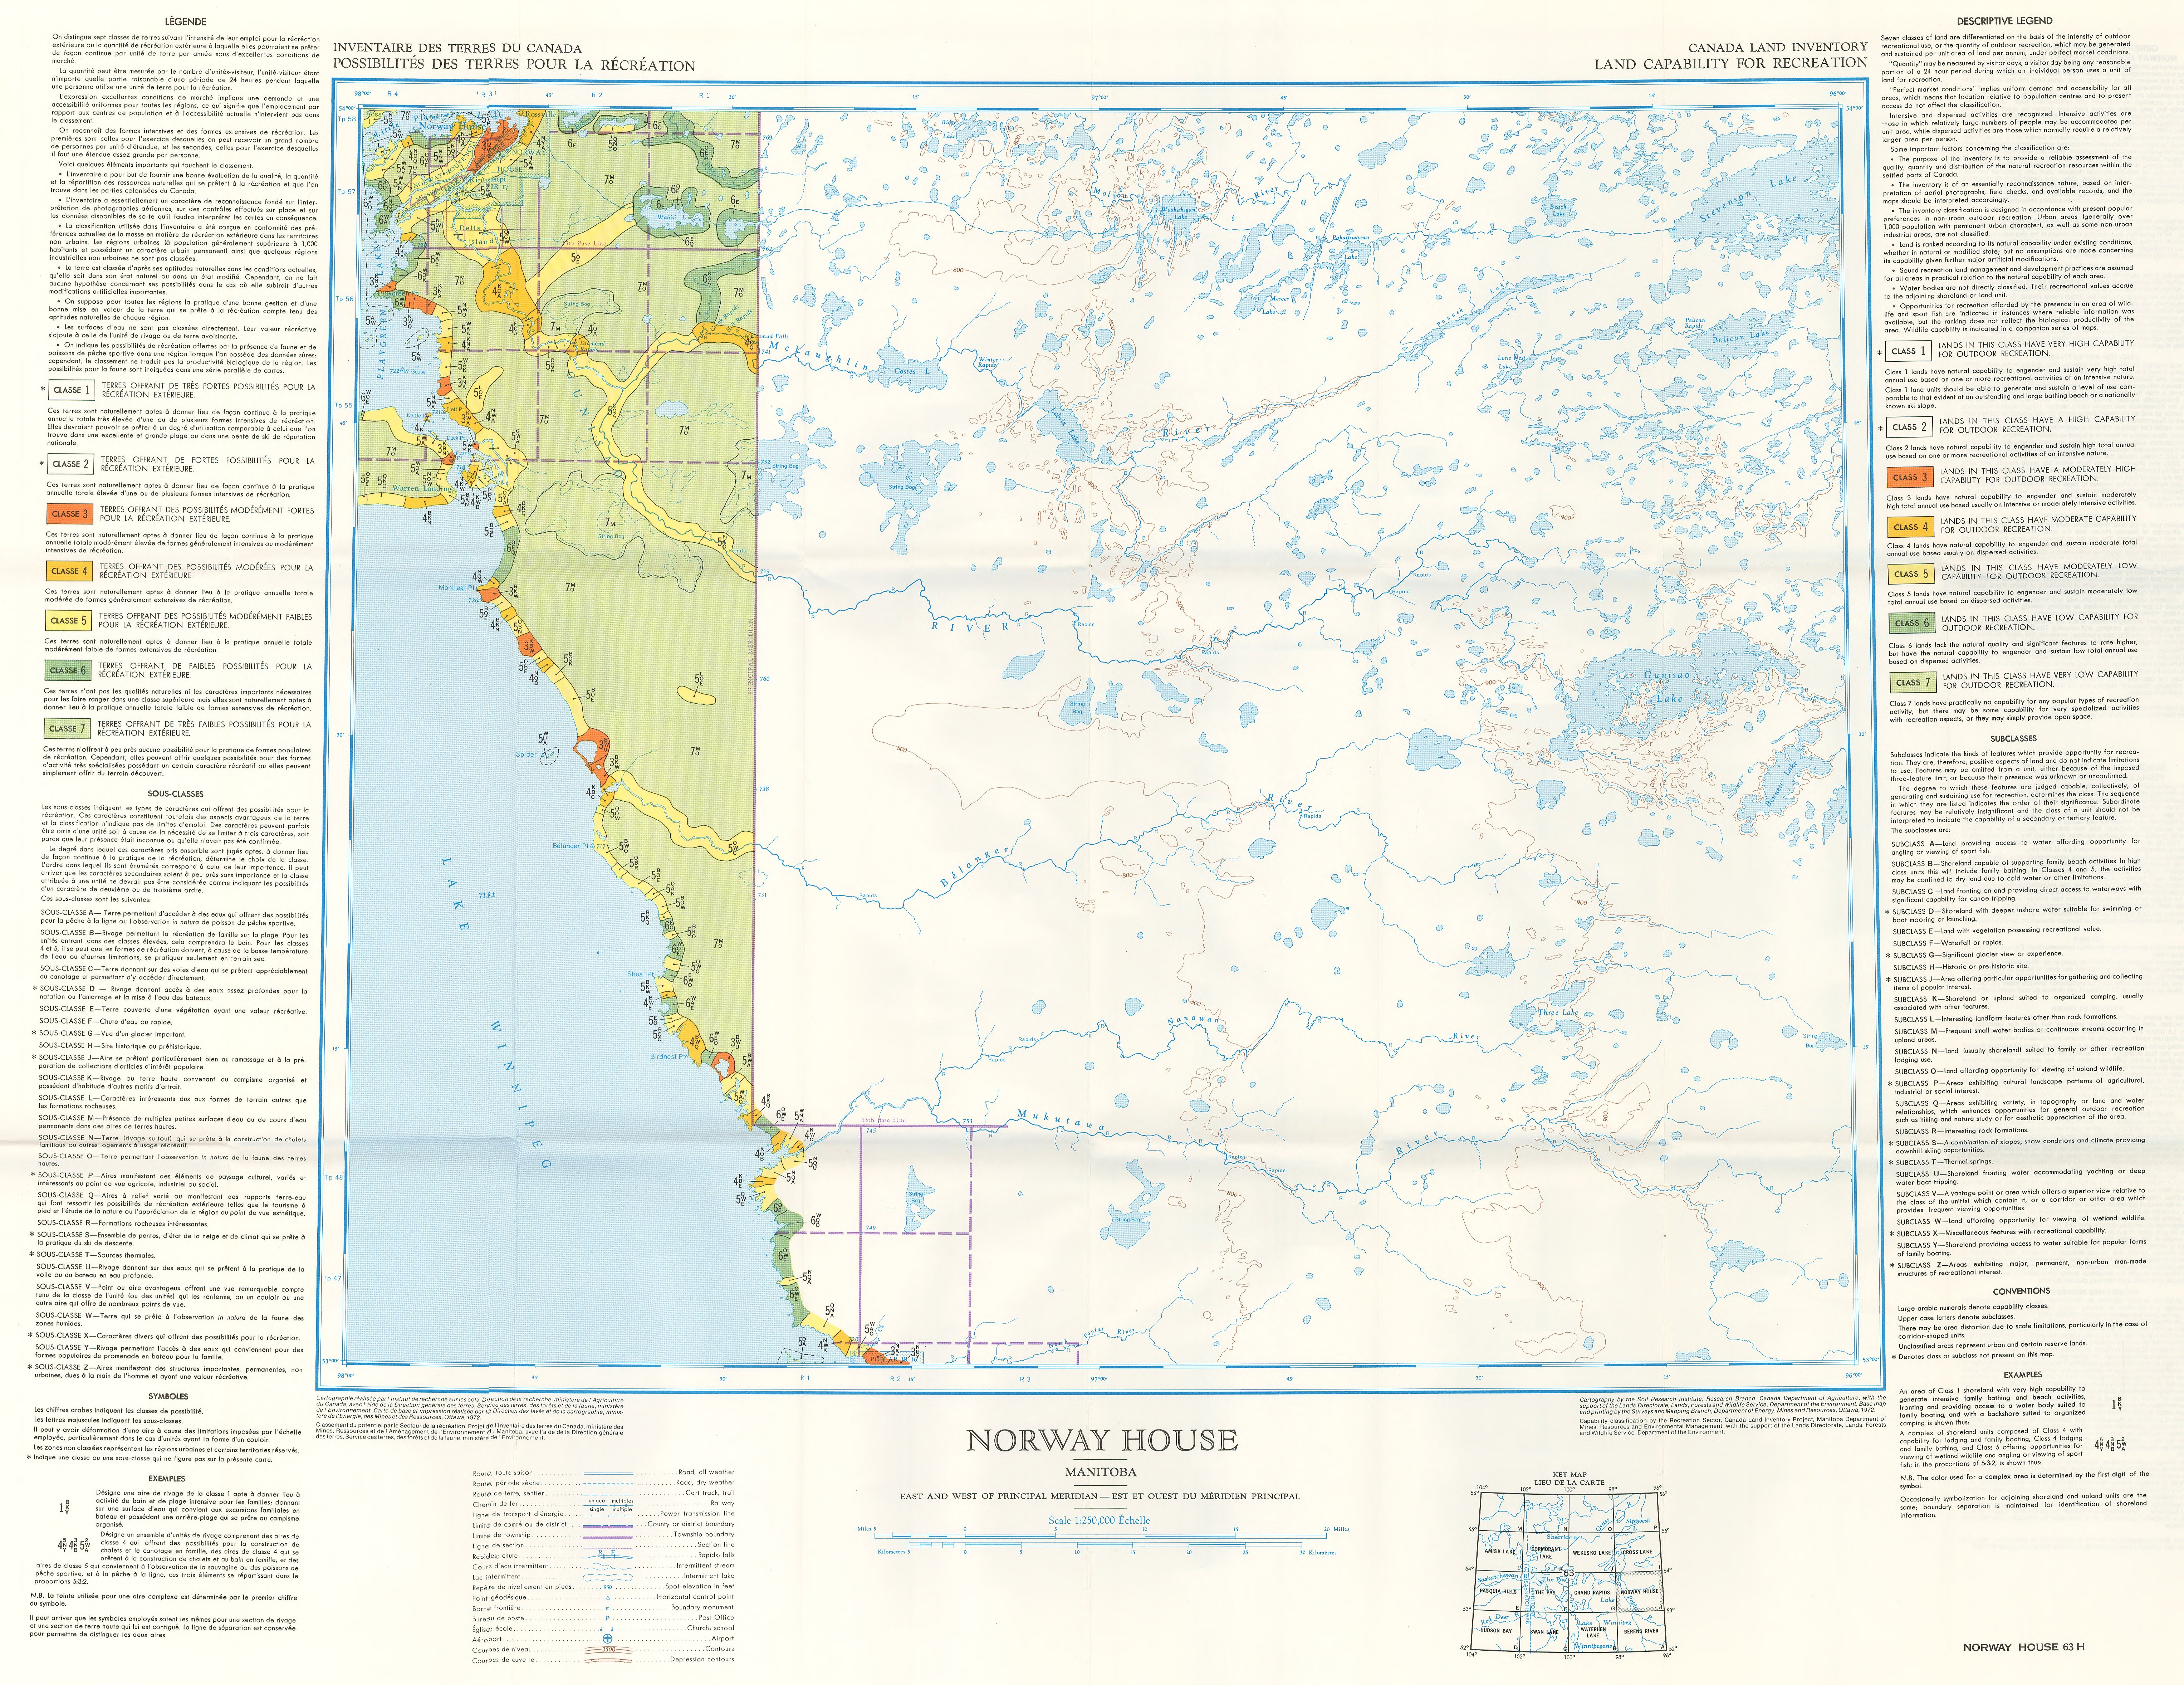 Land Capability For Recreation - Norway house map